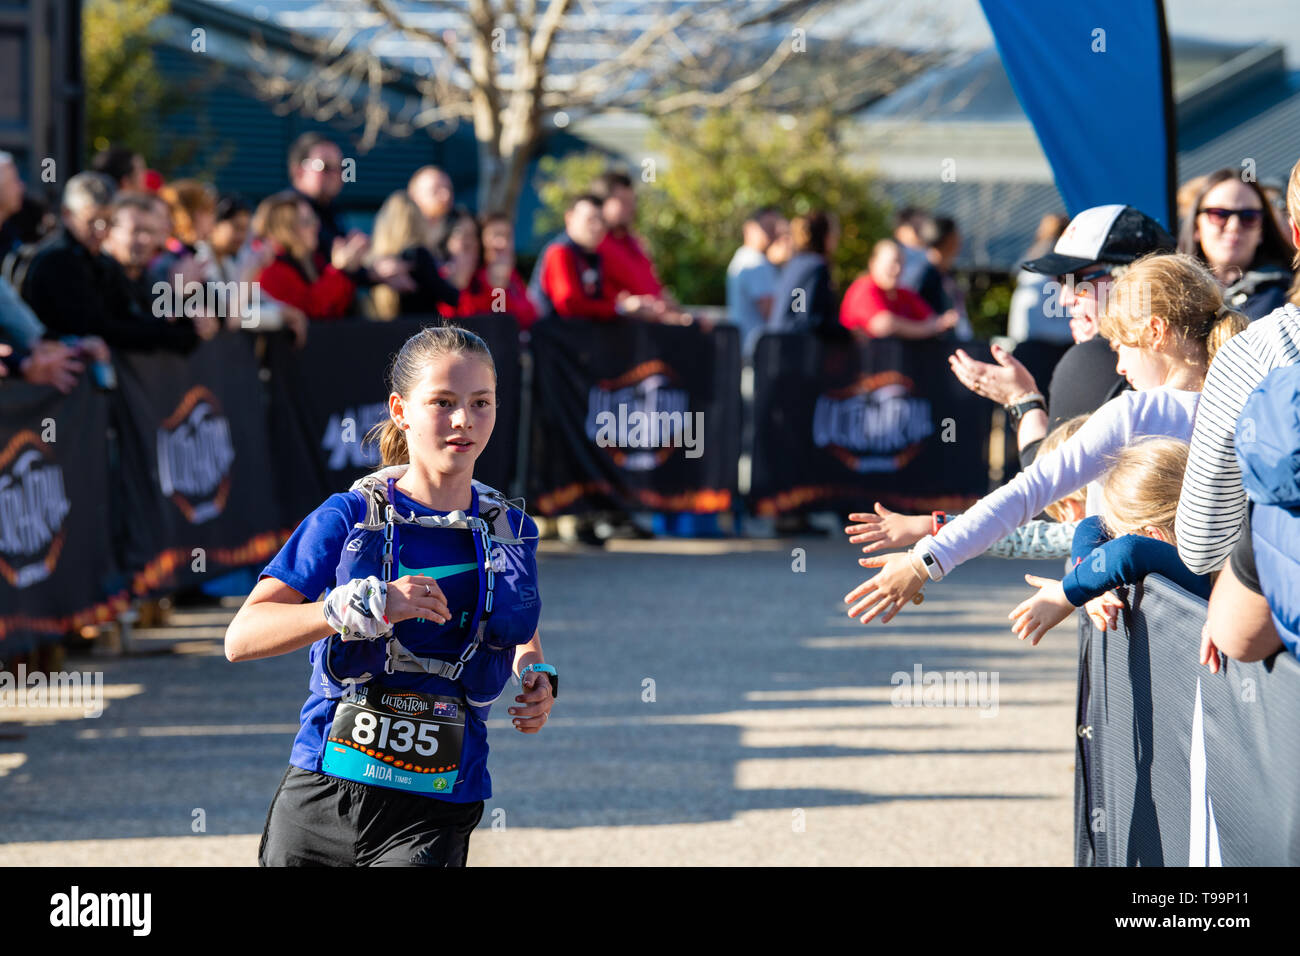 Blue Mountains, Australia - April 16 2019: Ultra-Trail Australia UTA11 race. Runner about to finish rounds the bend on home stretch. - Stock Image